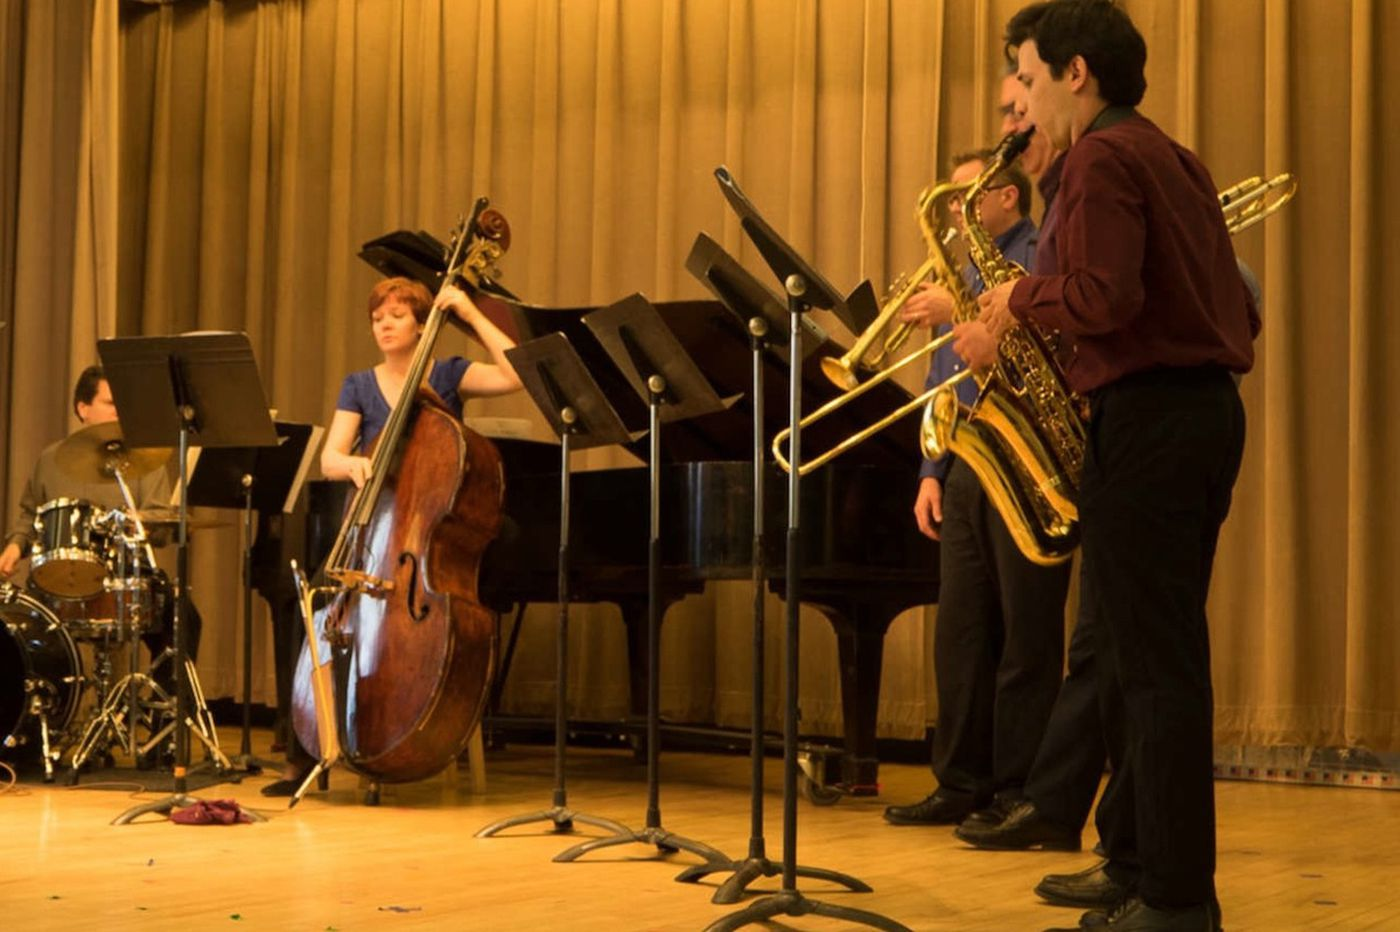 Network for New Music shows many facets of Milton Babbitt's music